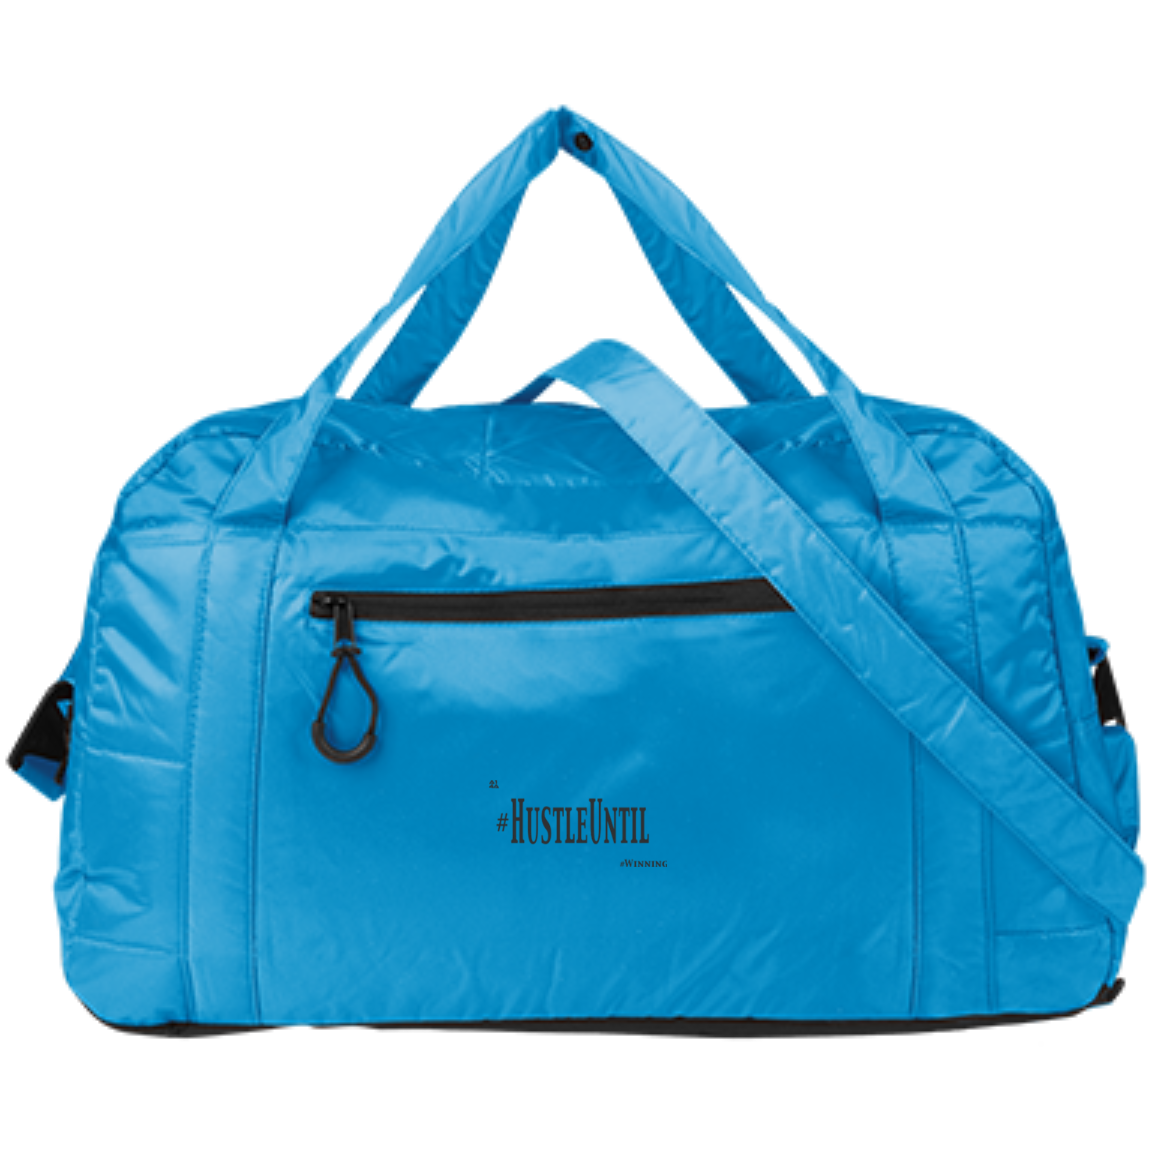 Hustle Until - Holloway Intuition Bag